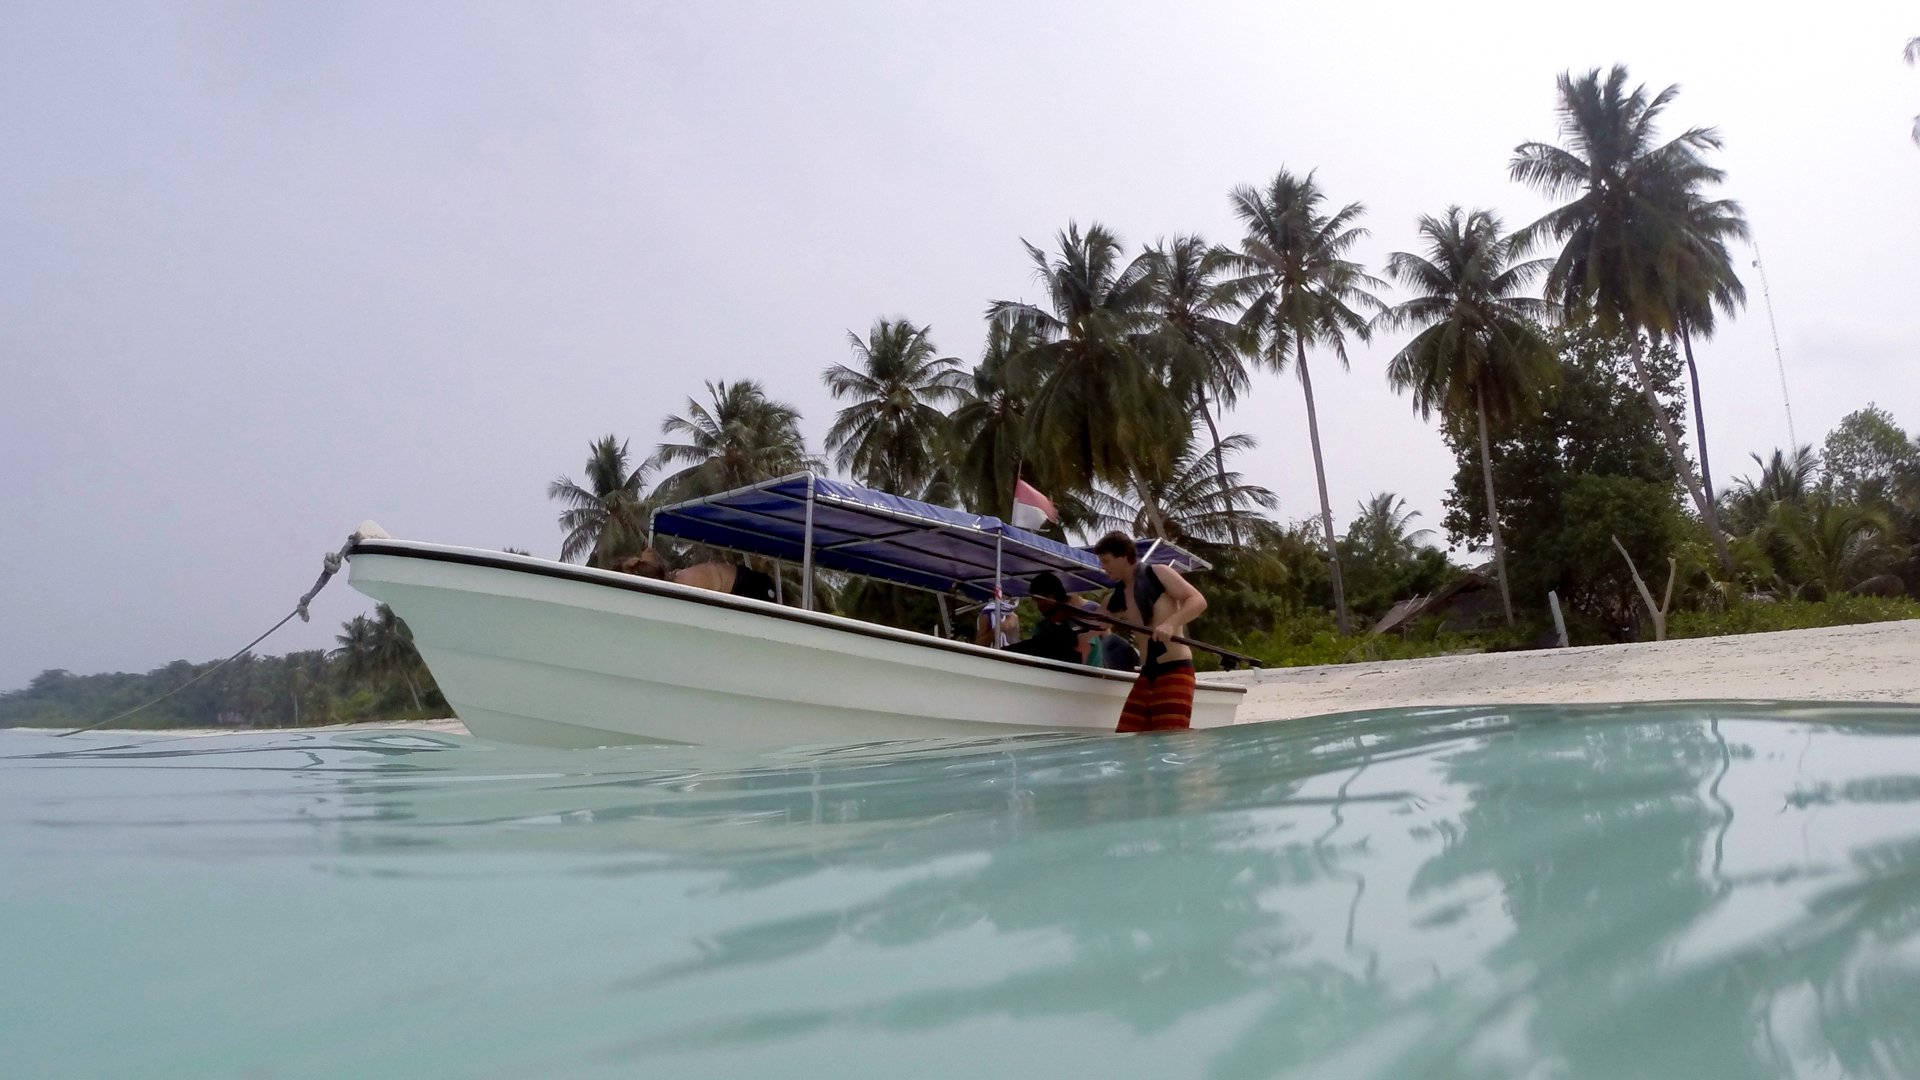 An in-water photograph of a small boat used to take Pureline's surfers out to the reef breaks in Indonesia.